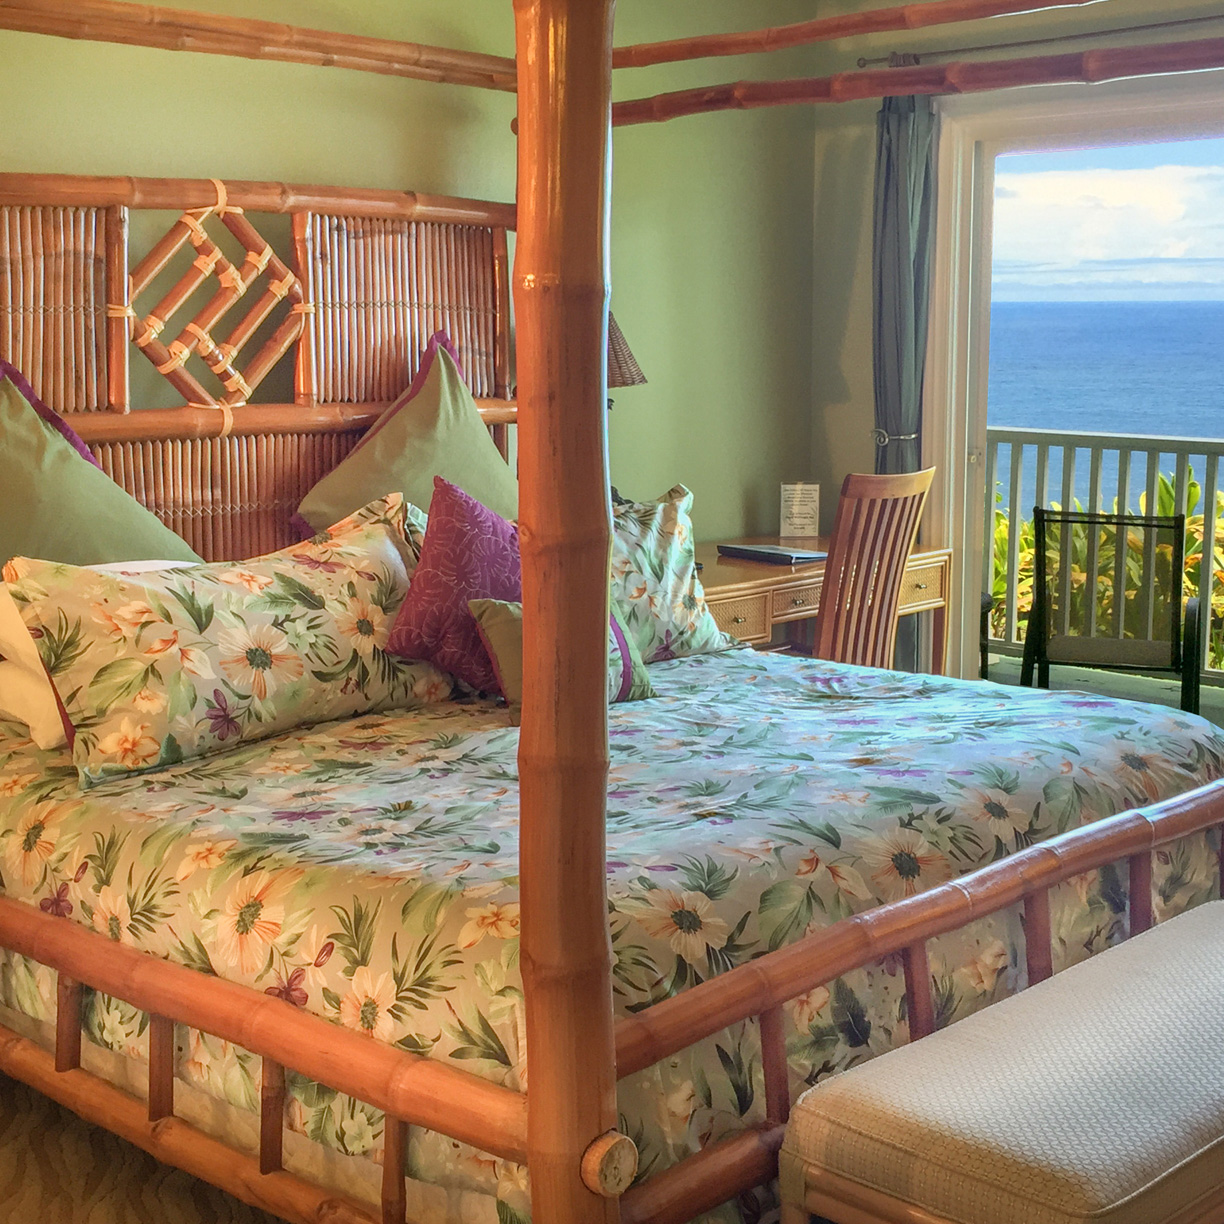 Enjoy the ocean view from your bed at the palms cliff house inn.